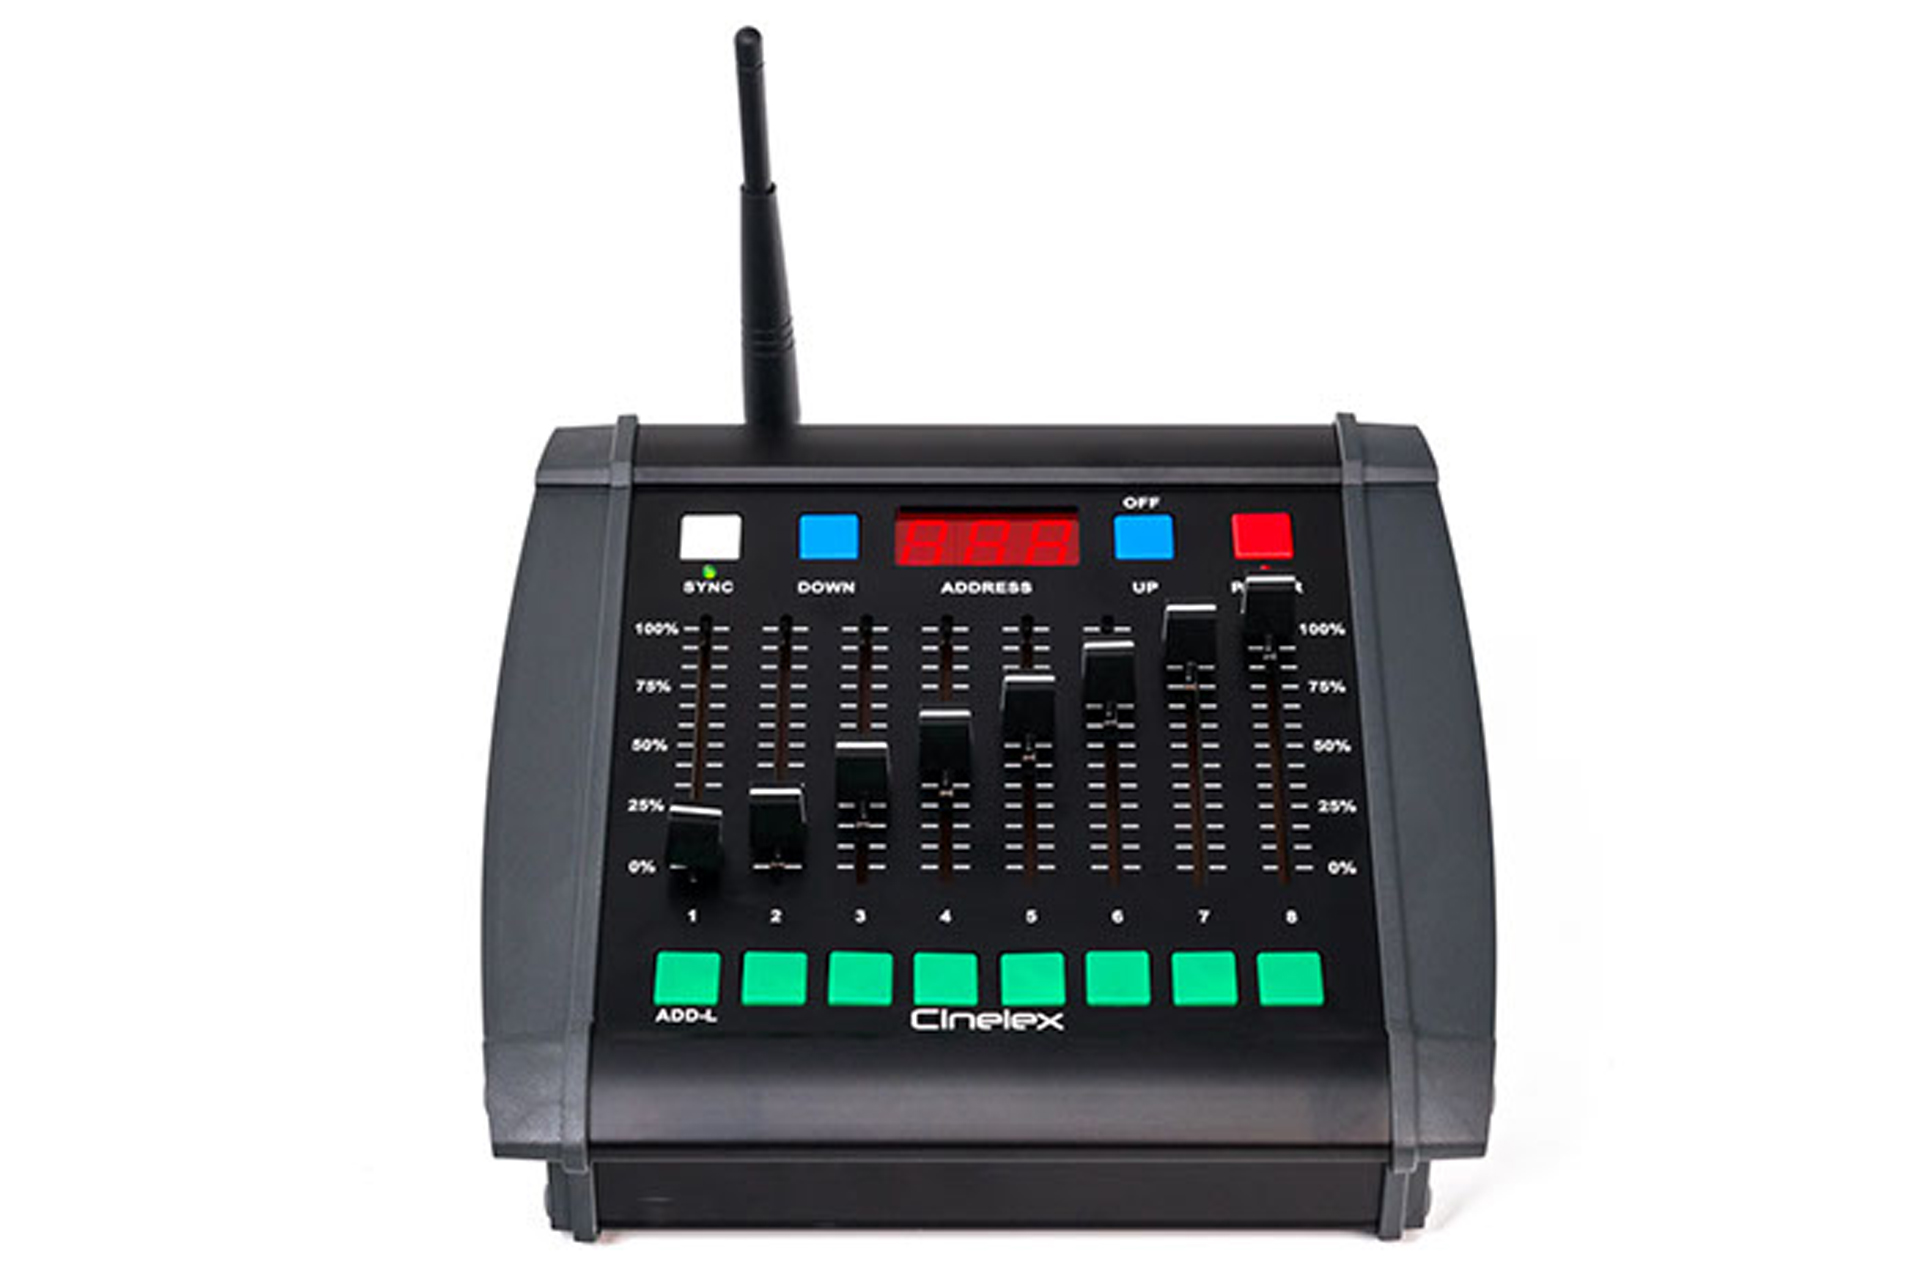 Universal Wireless DMX transmitter portable desk Cinelex Desk TX-8